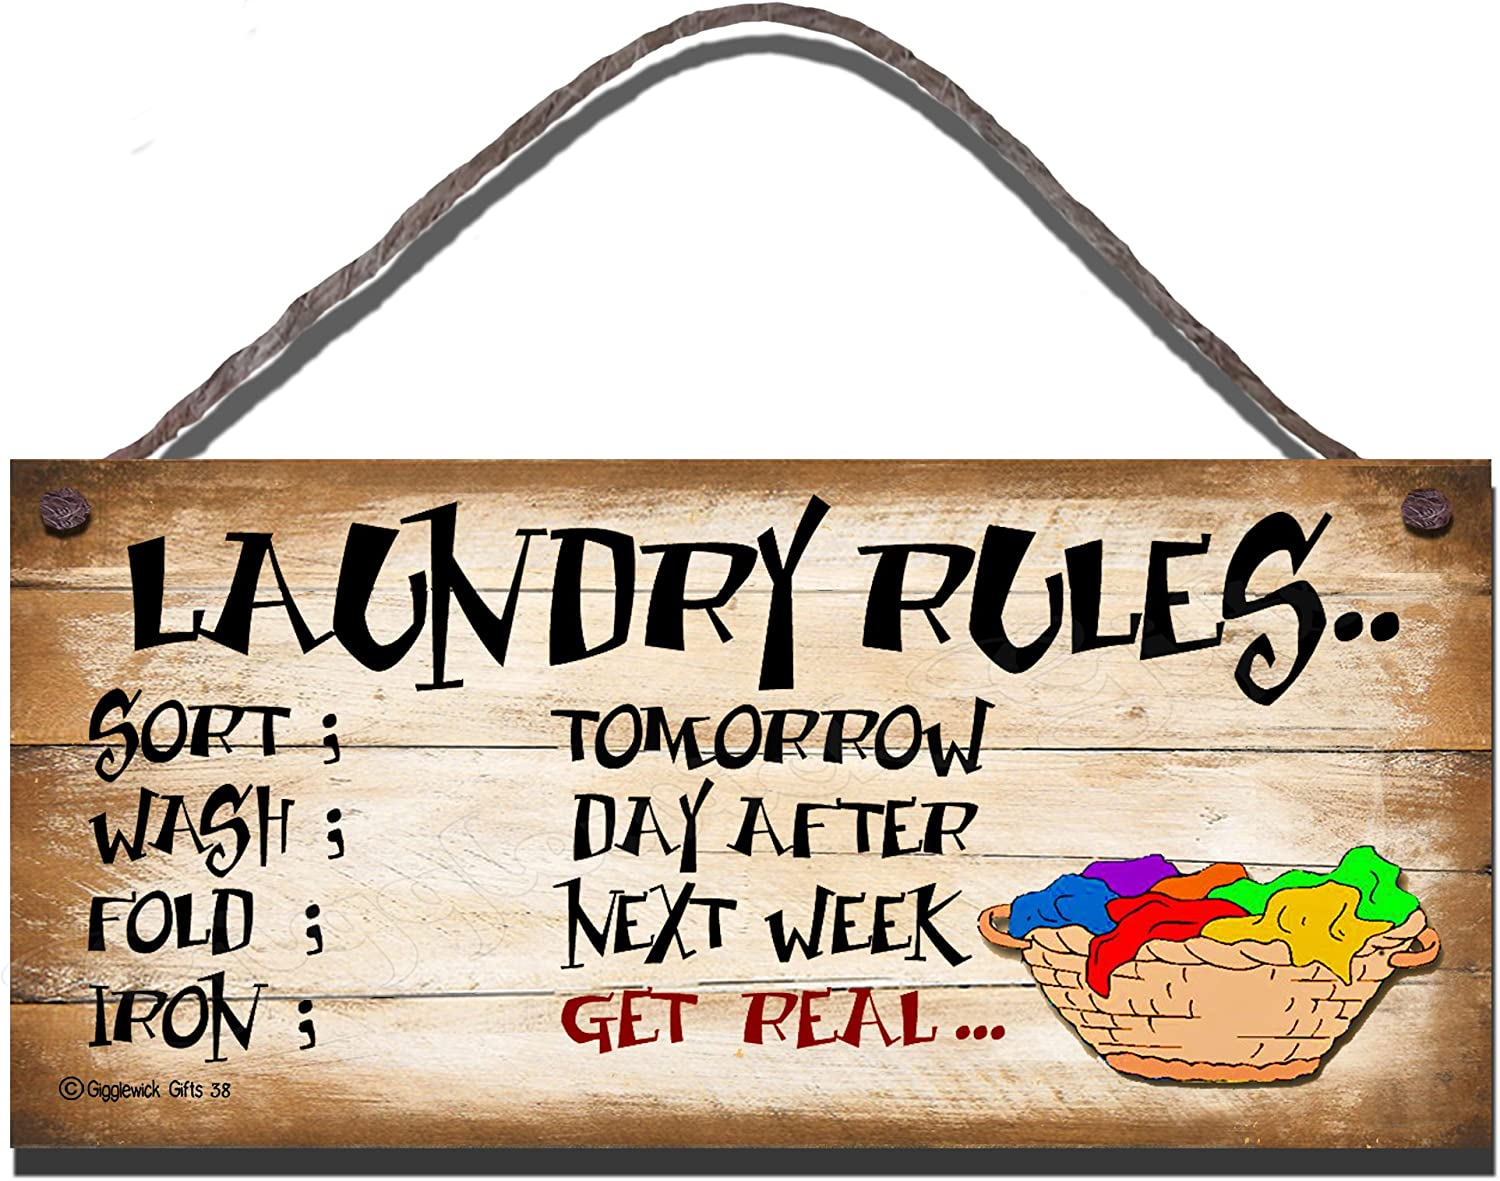 SHABBY CHIC FUNNY WOODEN SIGN LAUNDRY RULES GIFT PRESENT KITCHEN 38